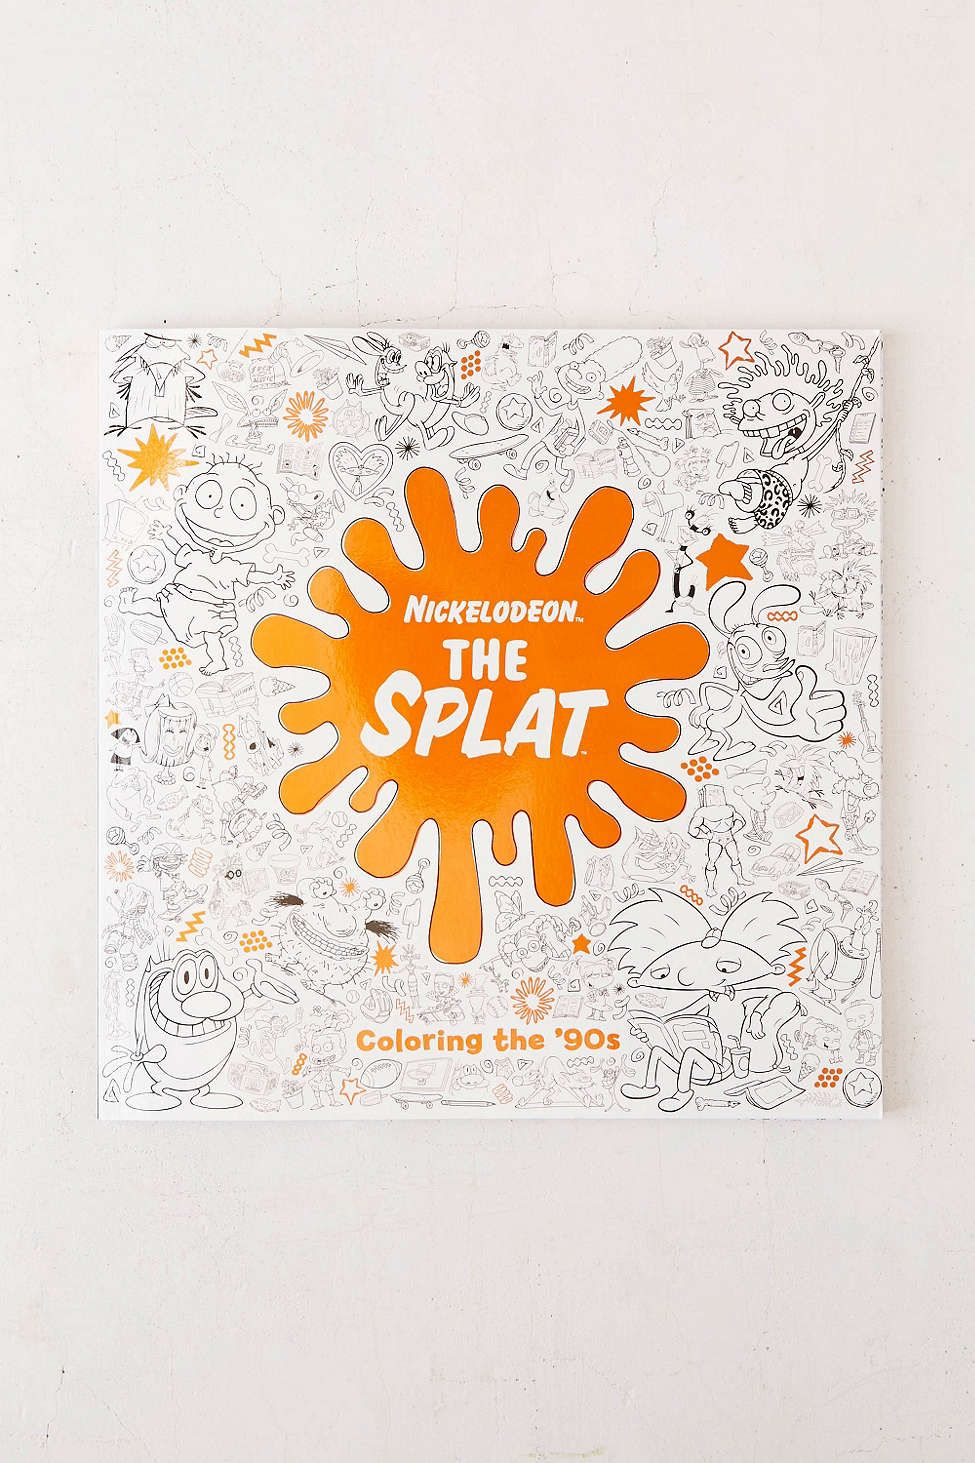 The Splat Coloring 90s Nickelodeon By Random House